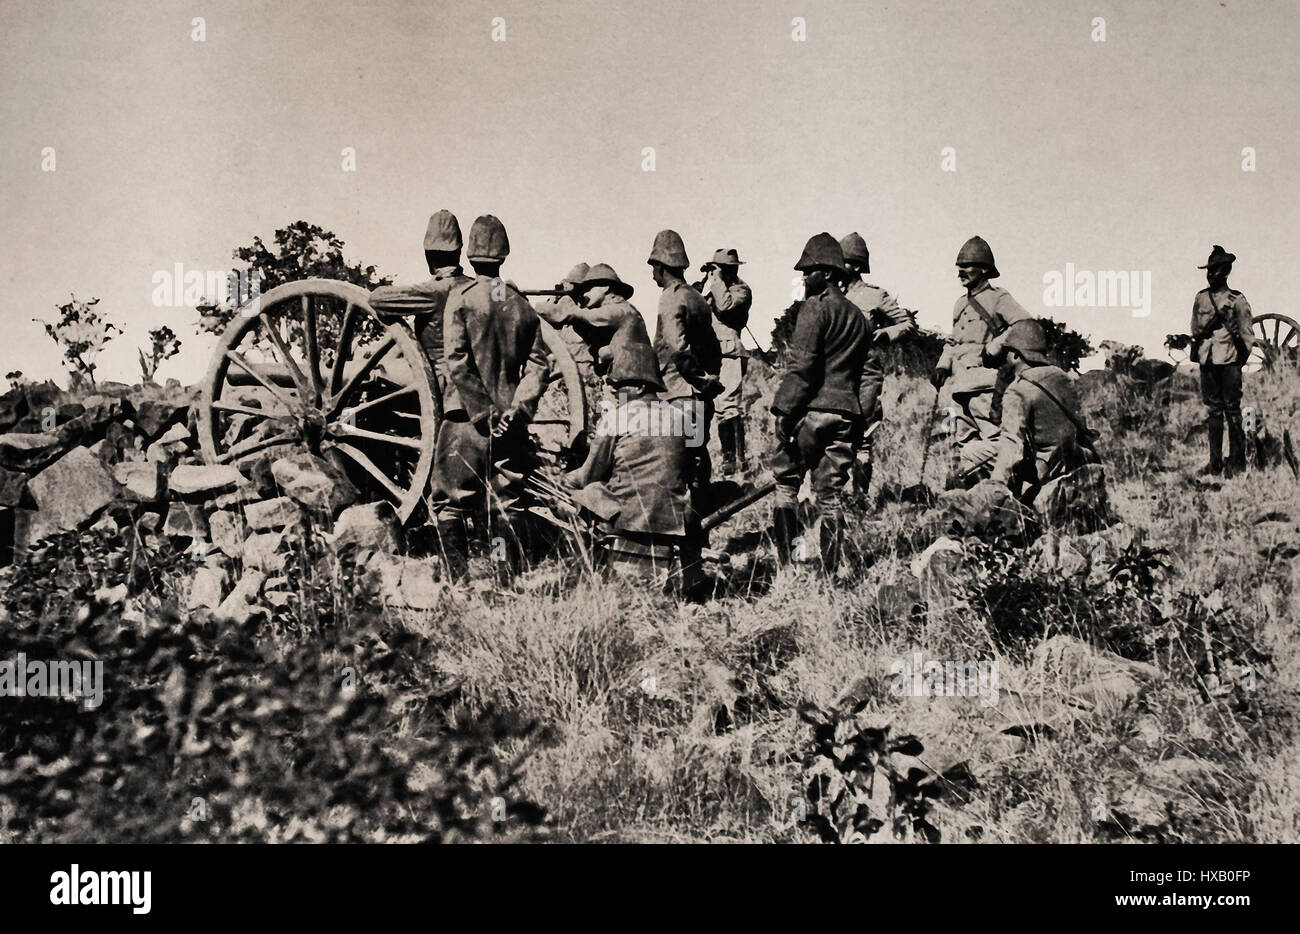 the boer war essay Boer war the people of south africa were ever woolgathering of a incorporate state they wanted all its provinces to unify as one peaceable state, but they wanted this to come from within the confines of their ain people and non by agencies of other states taking over.